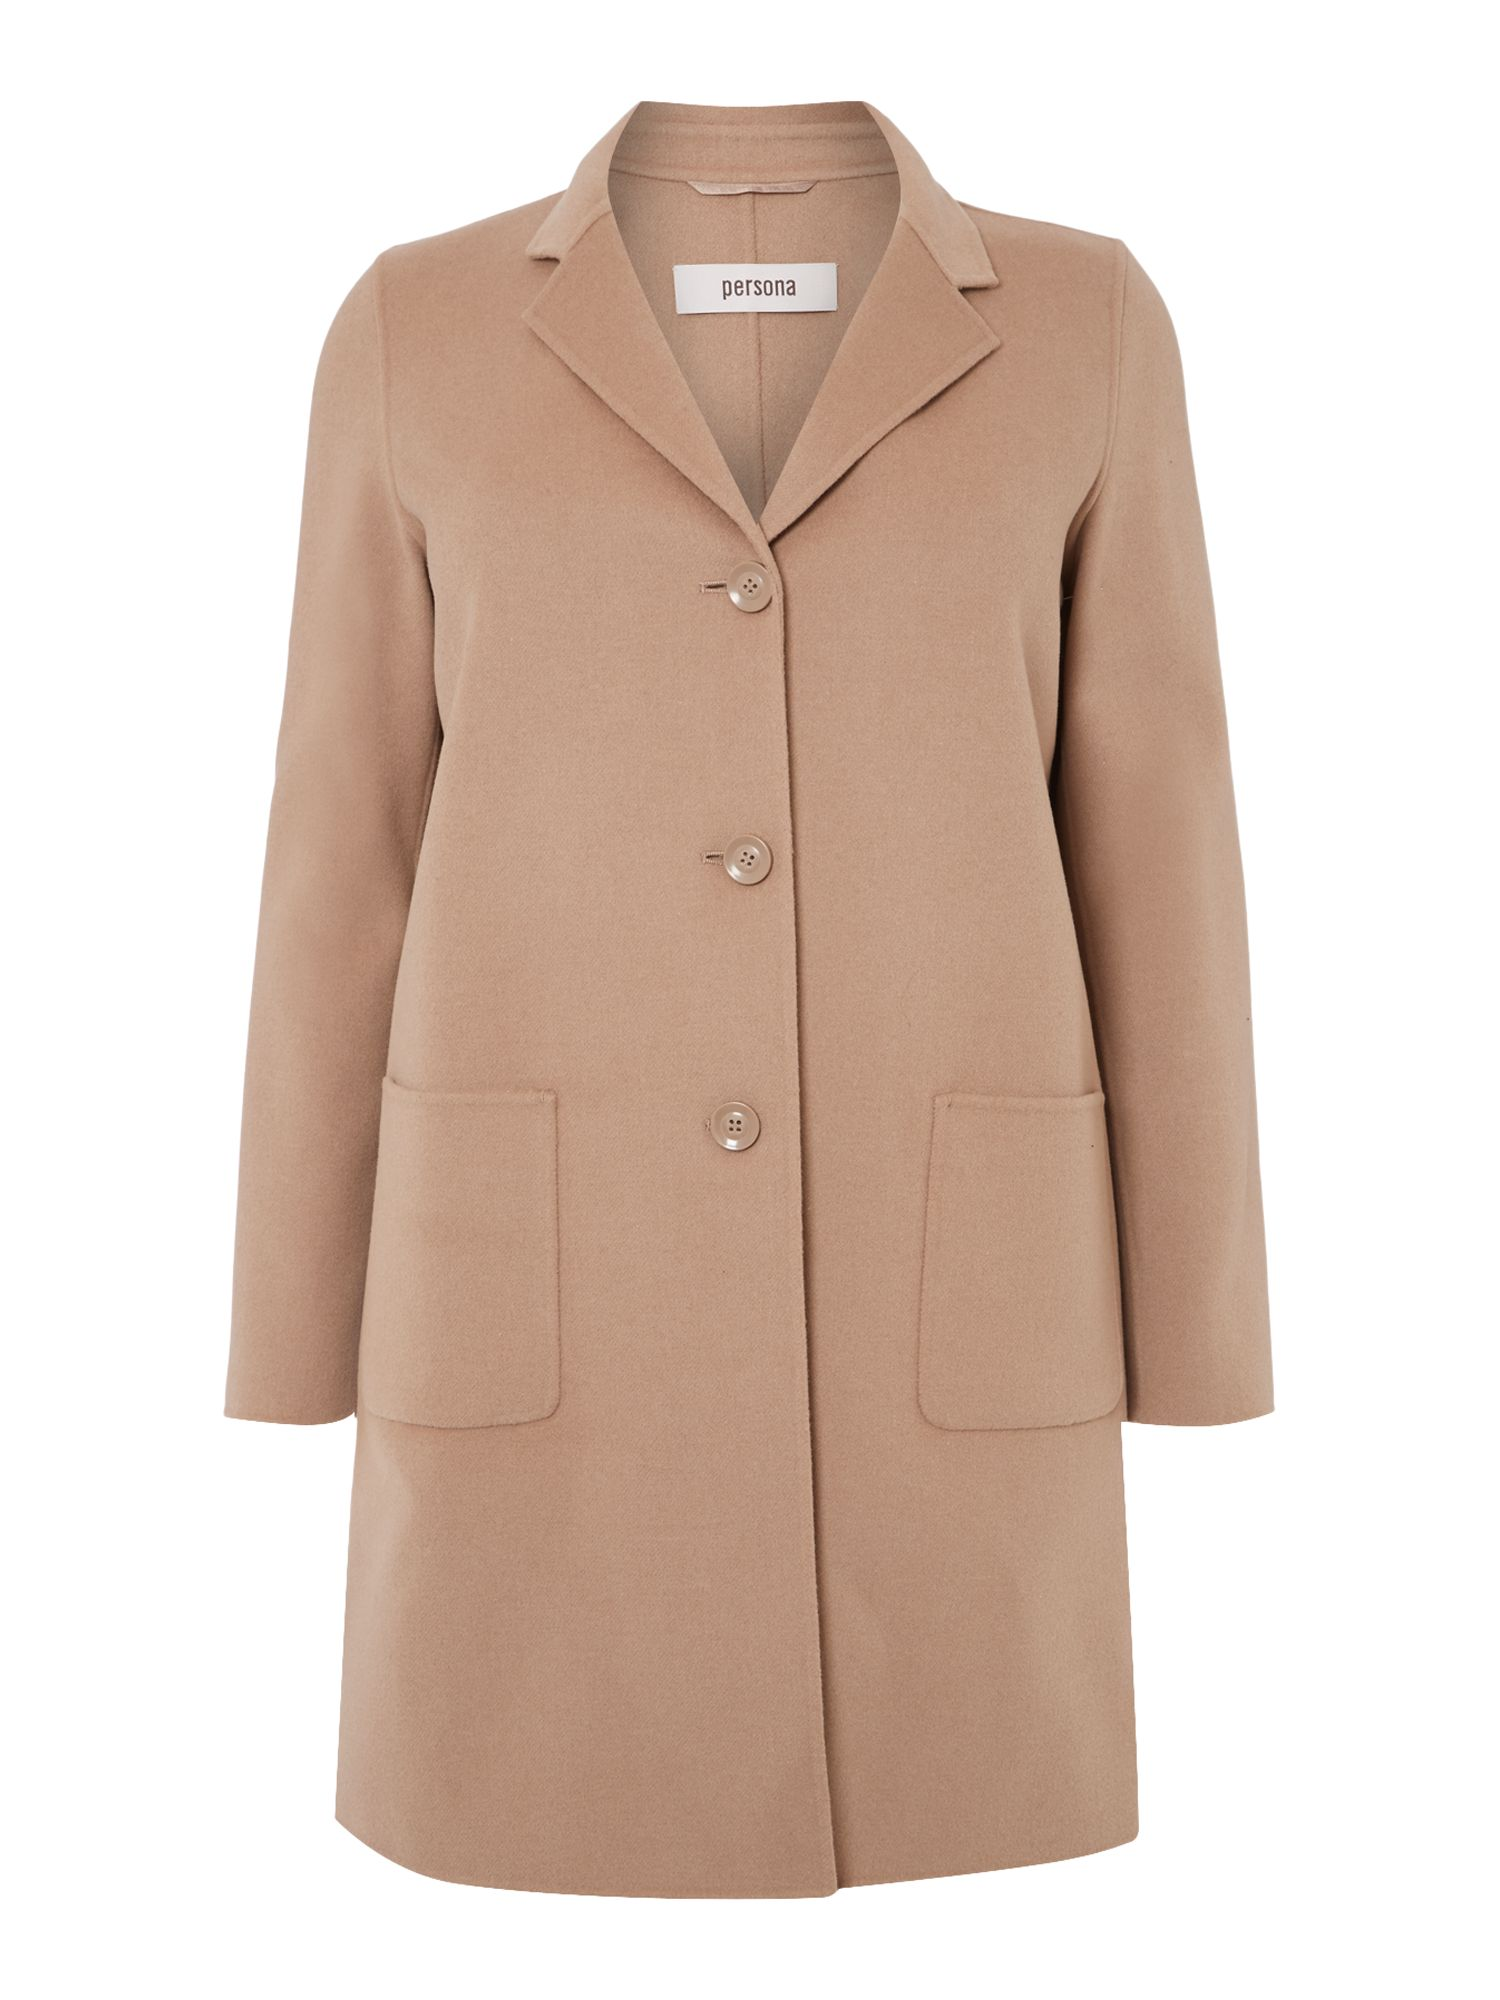 Nodo single breasted wool coat